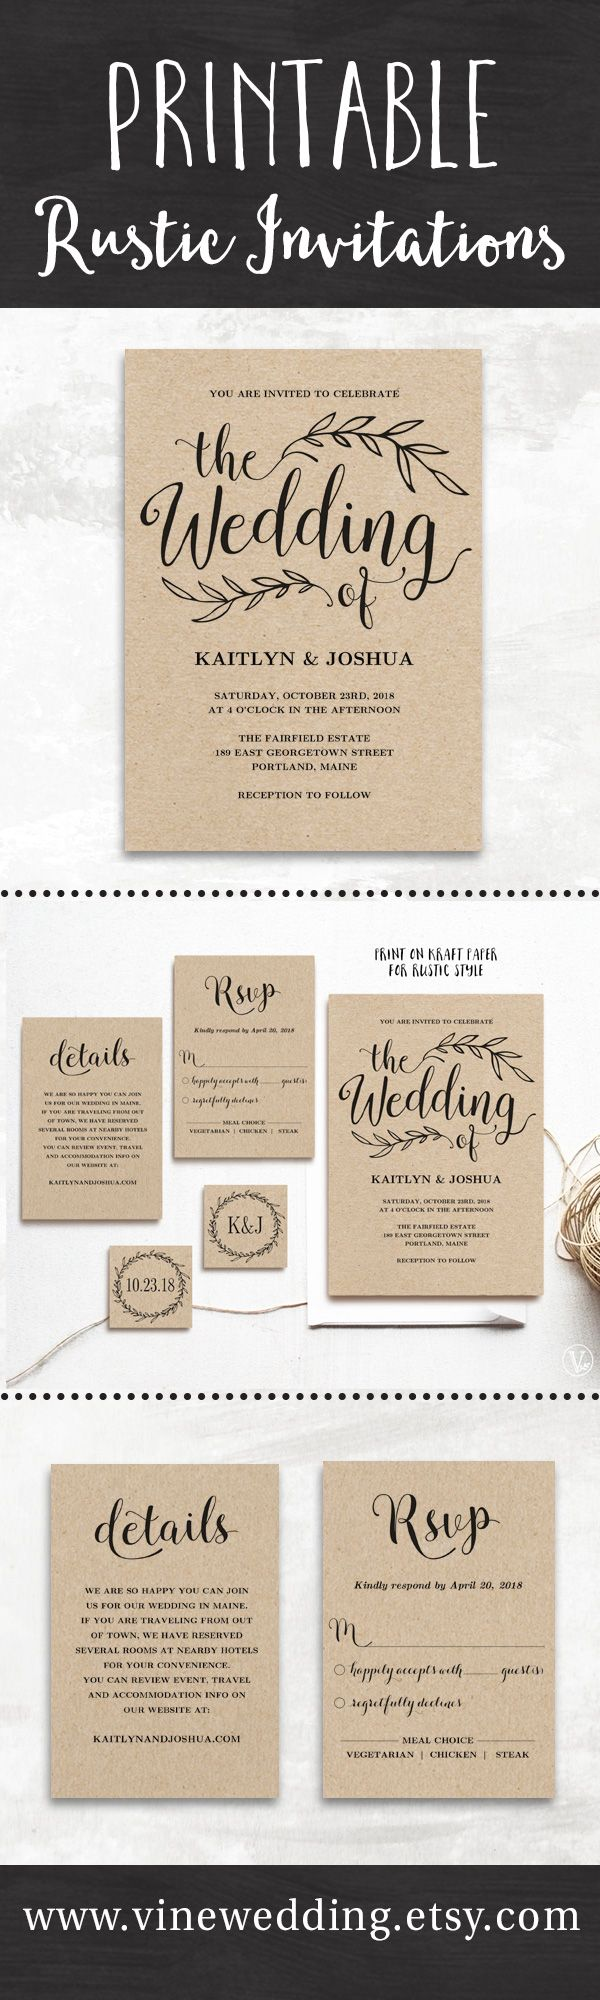 make your own wedding invitations online free%0A Beautiful rustic wedding invitations  Editable instant download templates  you can print as many as you